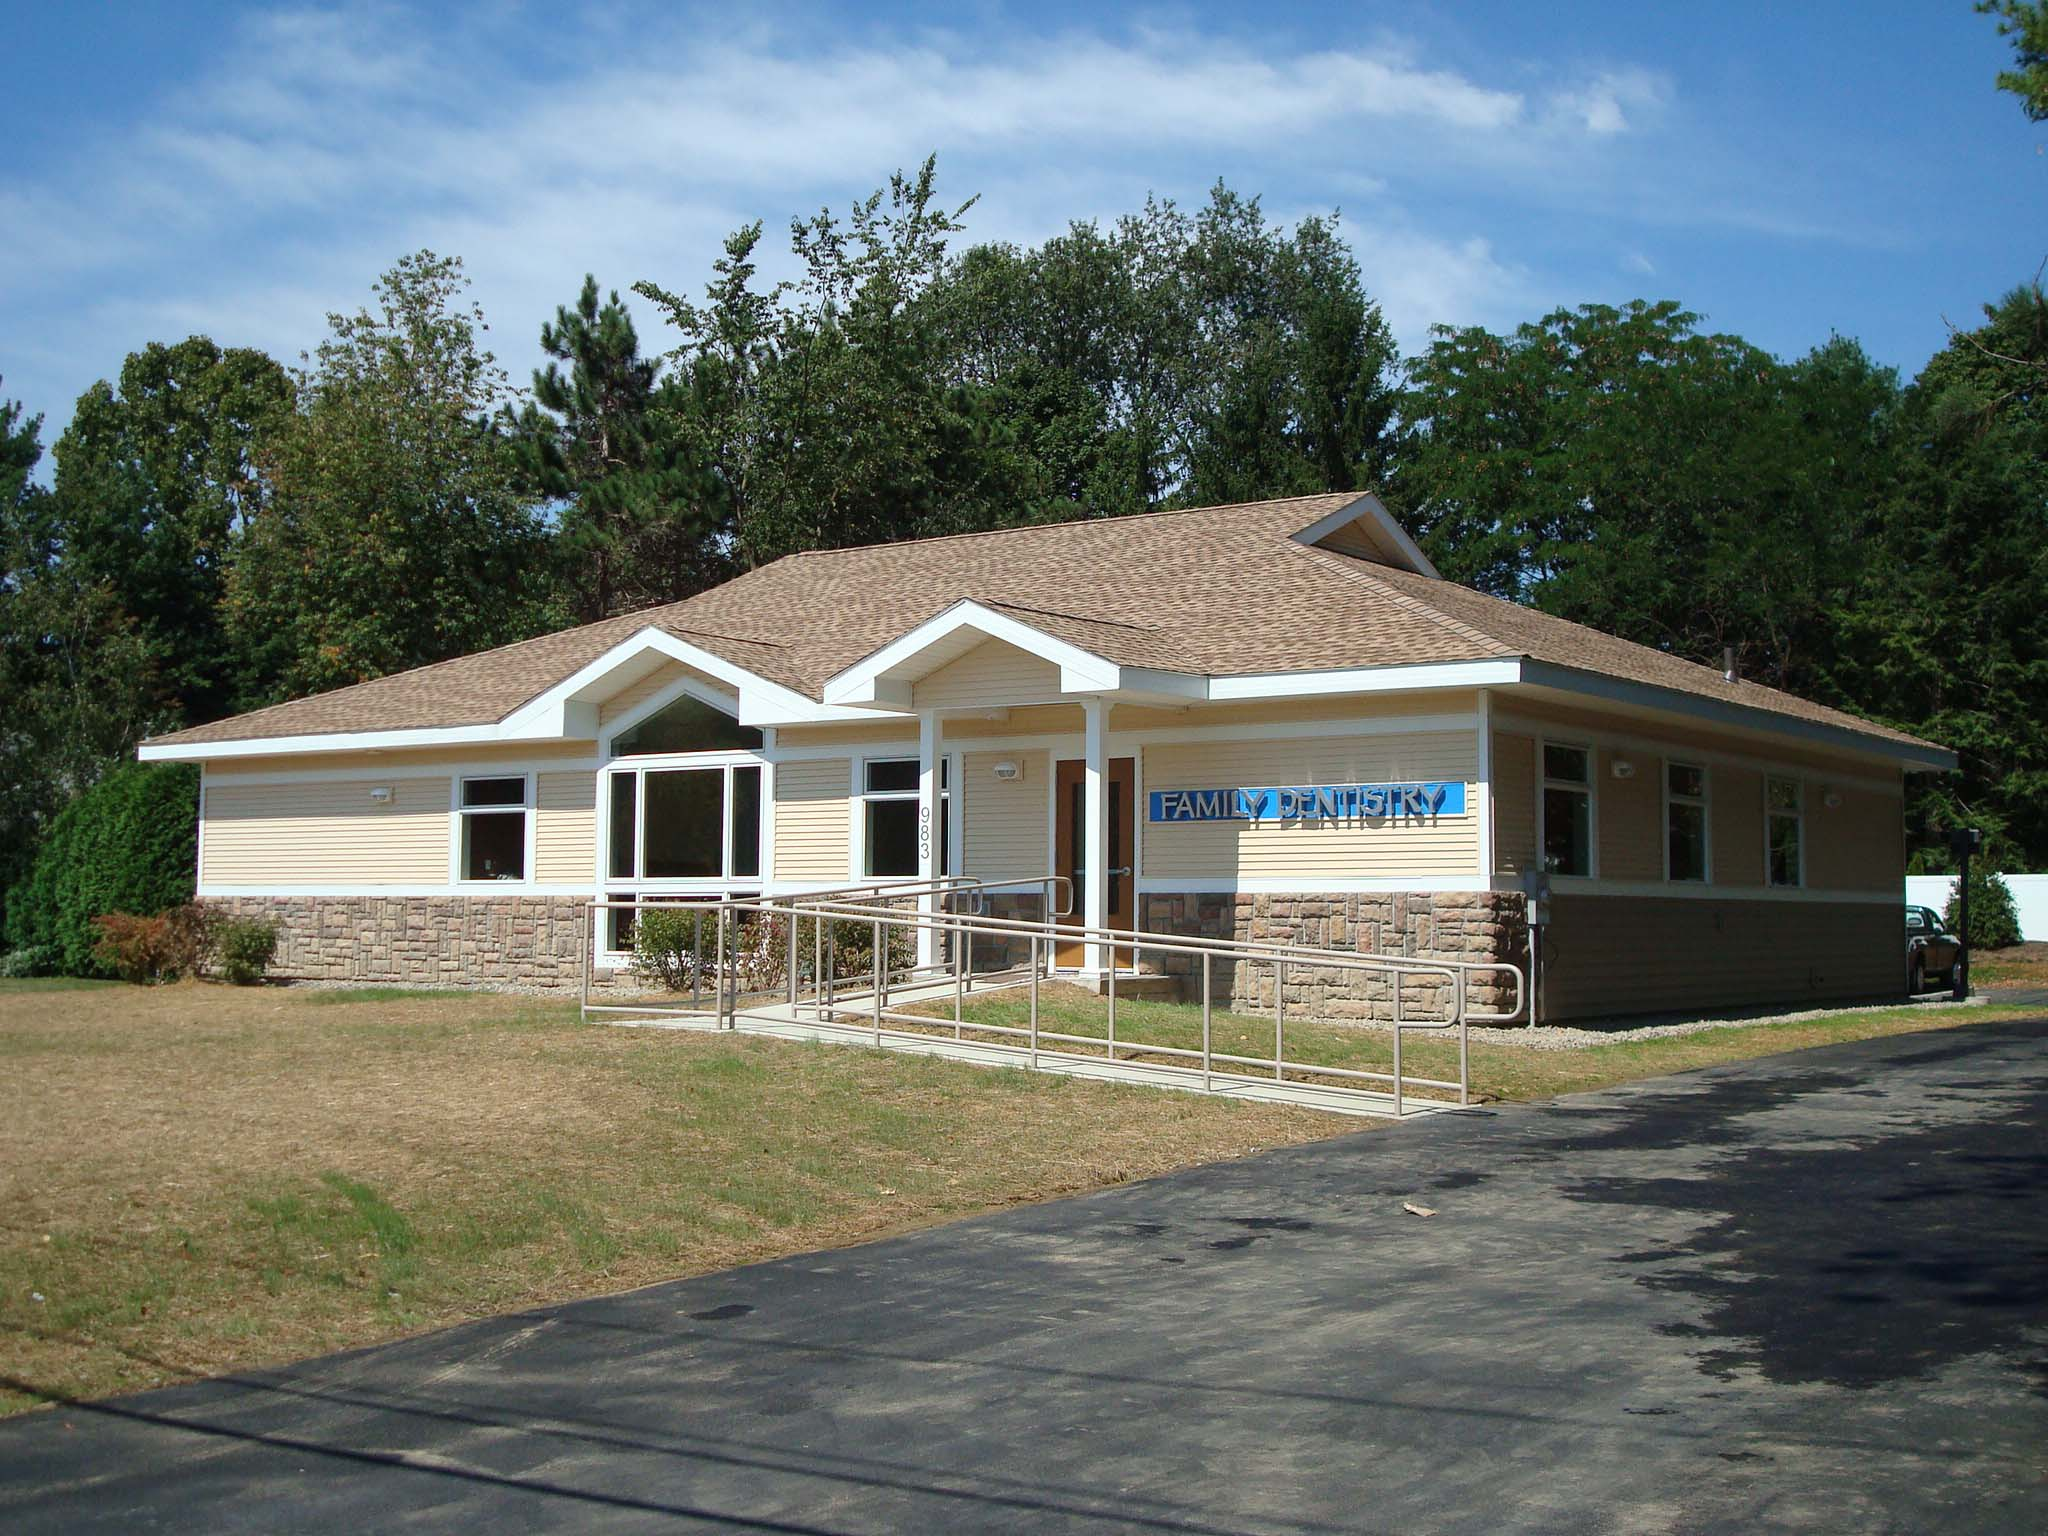 Clifton Park Family Dental Architects | Clifton Park, New York